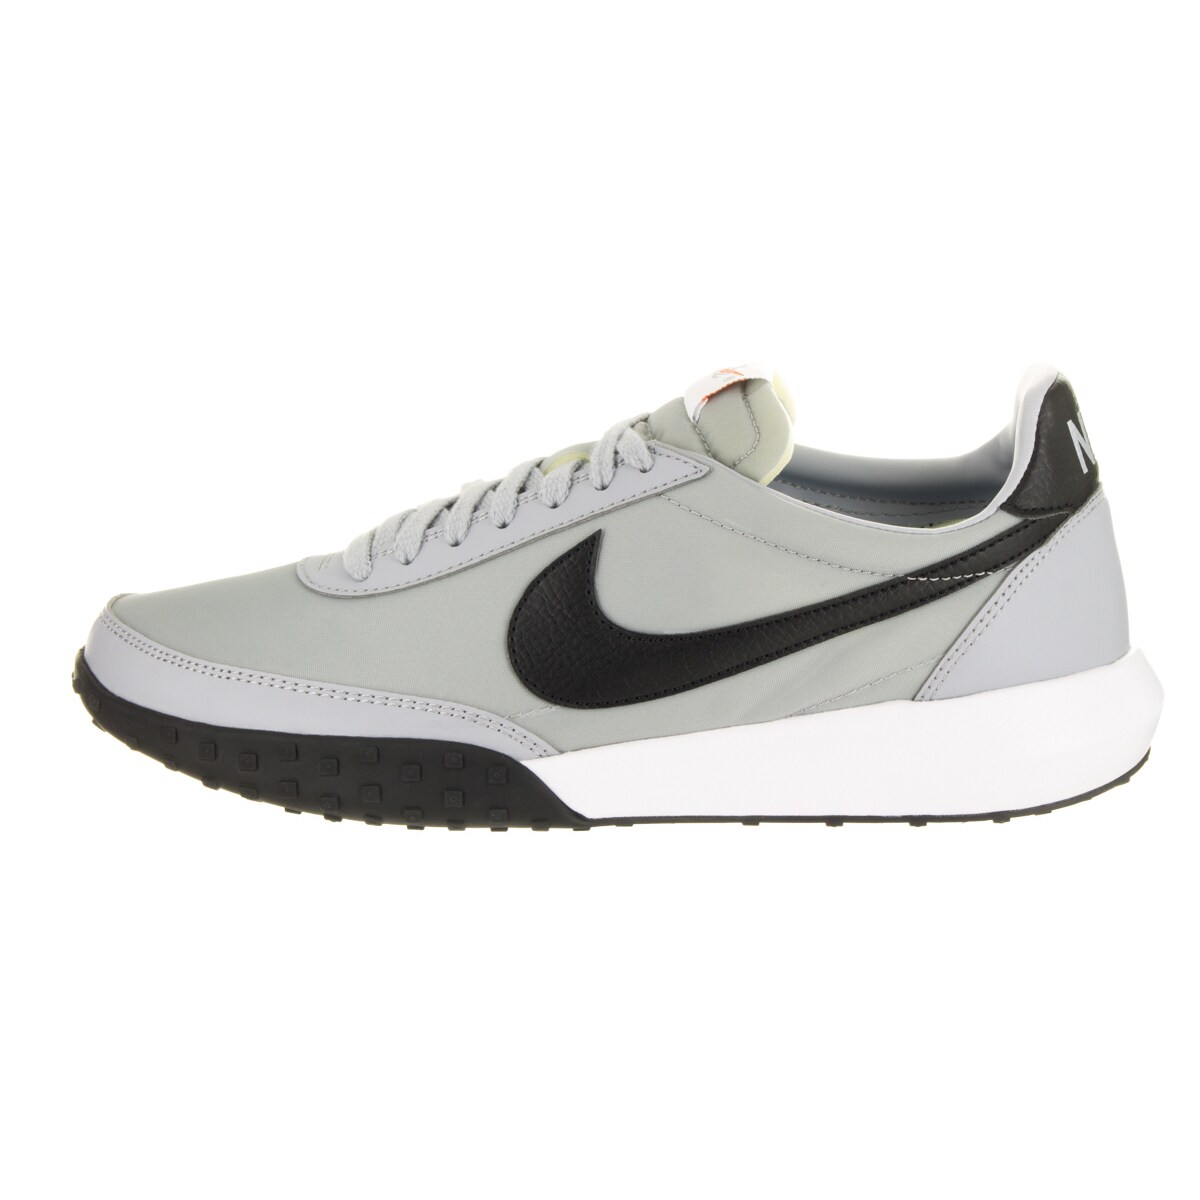 97a2f3a519fb Shop Nike Men s Roshe Waffle Racer NM Training Shoe - Free Shipping Today -  Overstock - 13478126